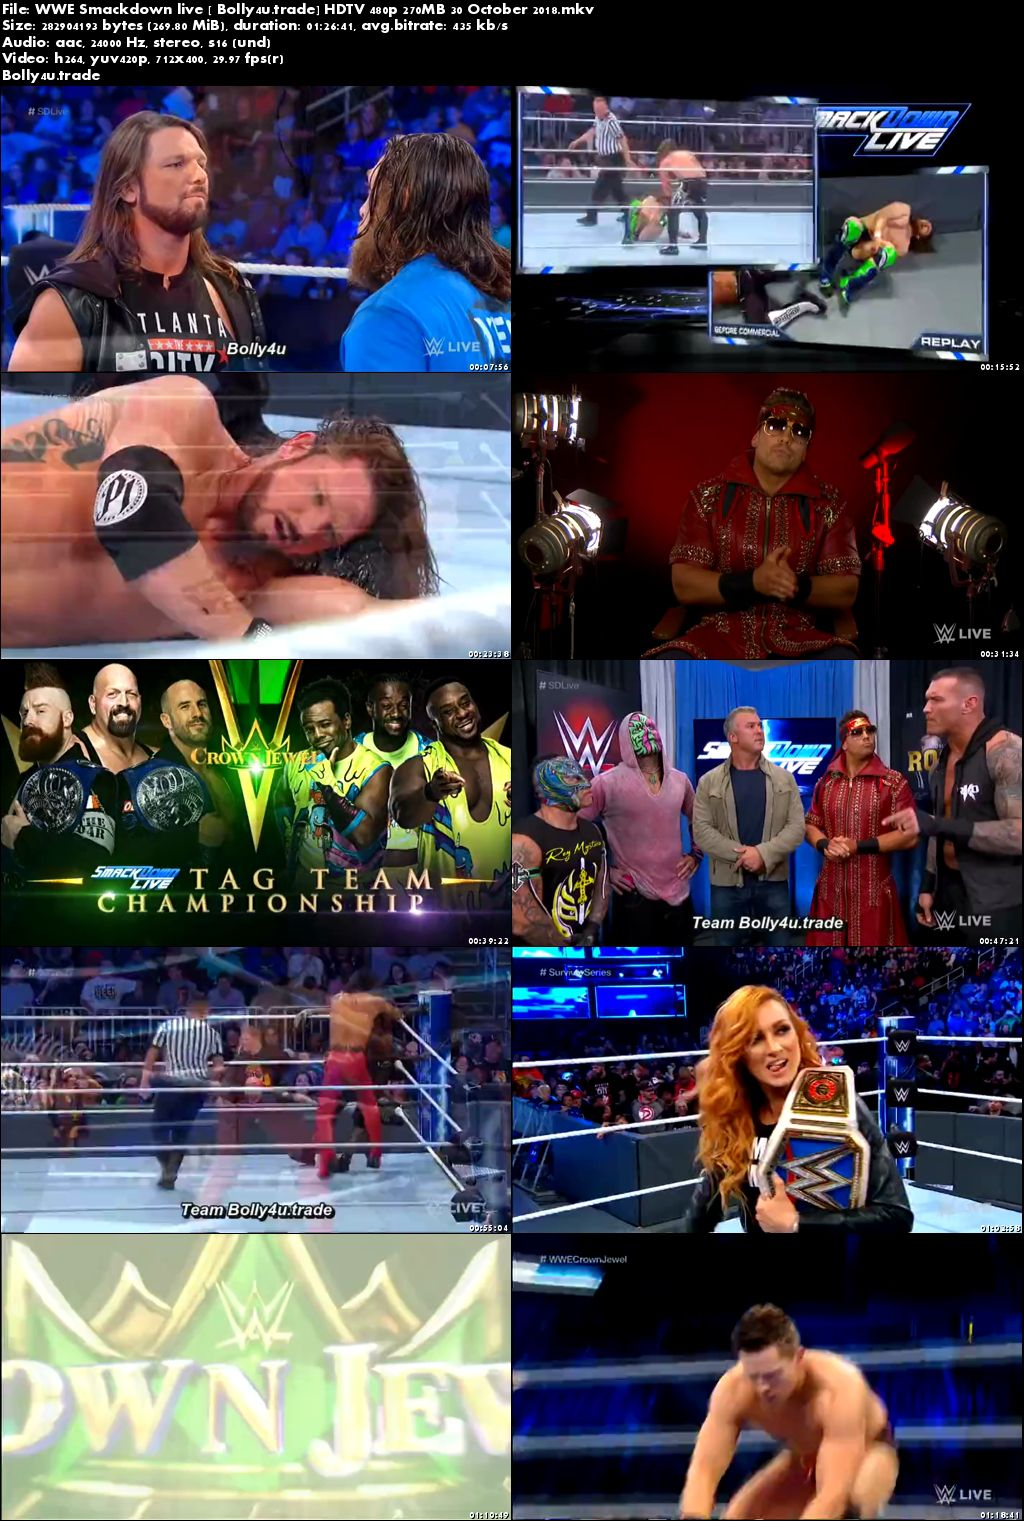 WWE Smackdown Live HDTV 480p 270MB 30 October 2018 Download